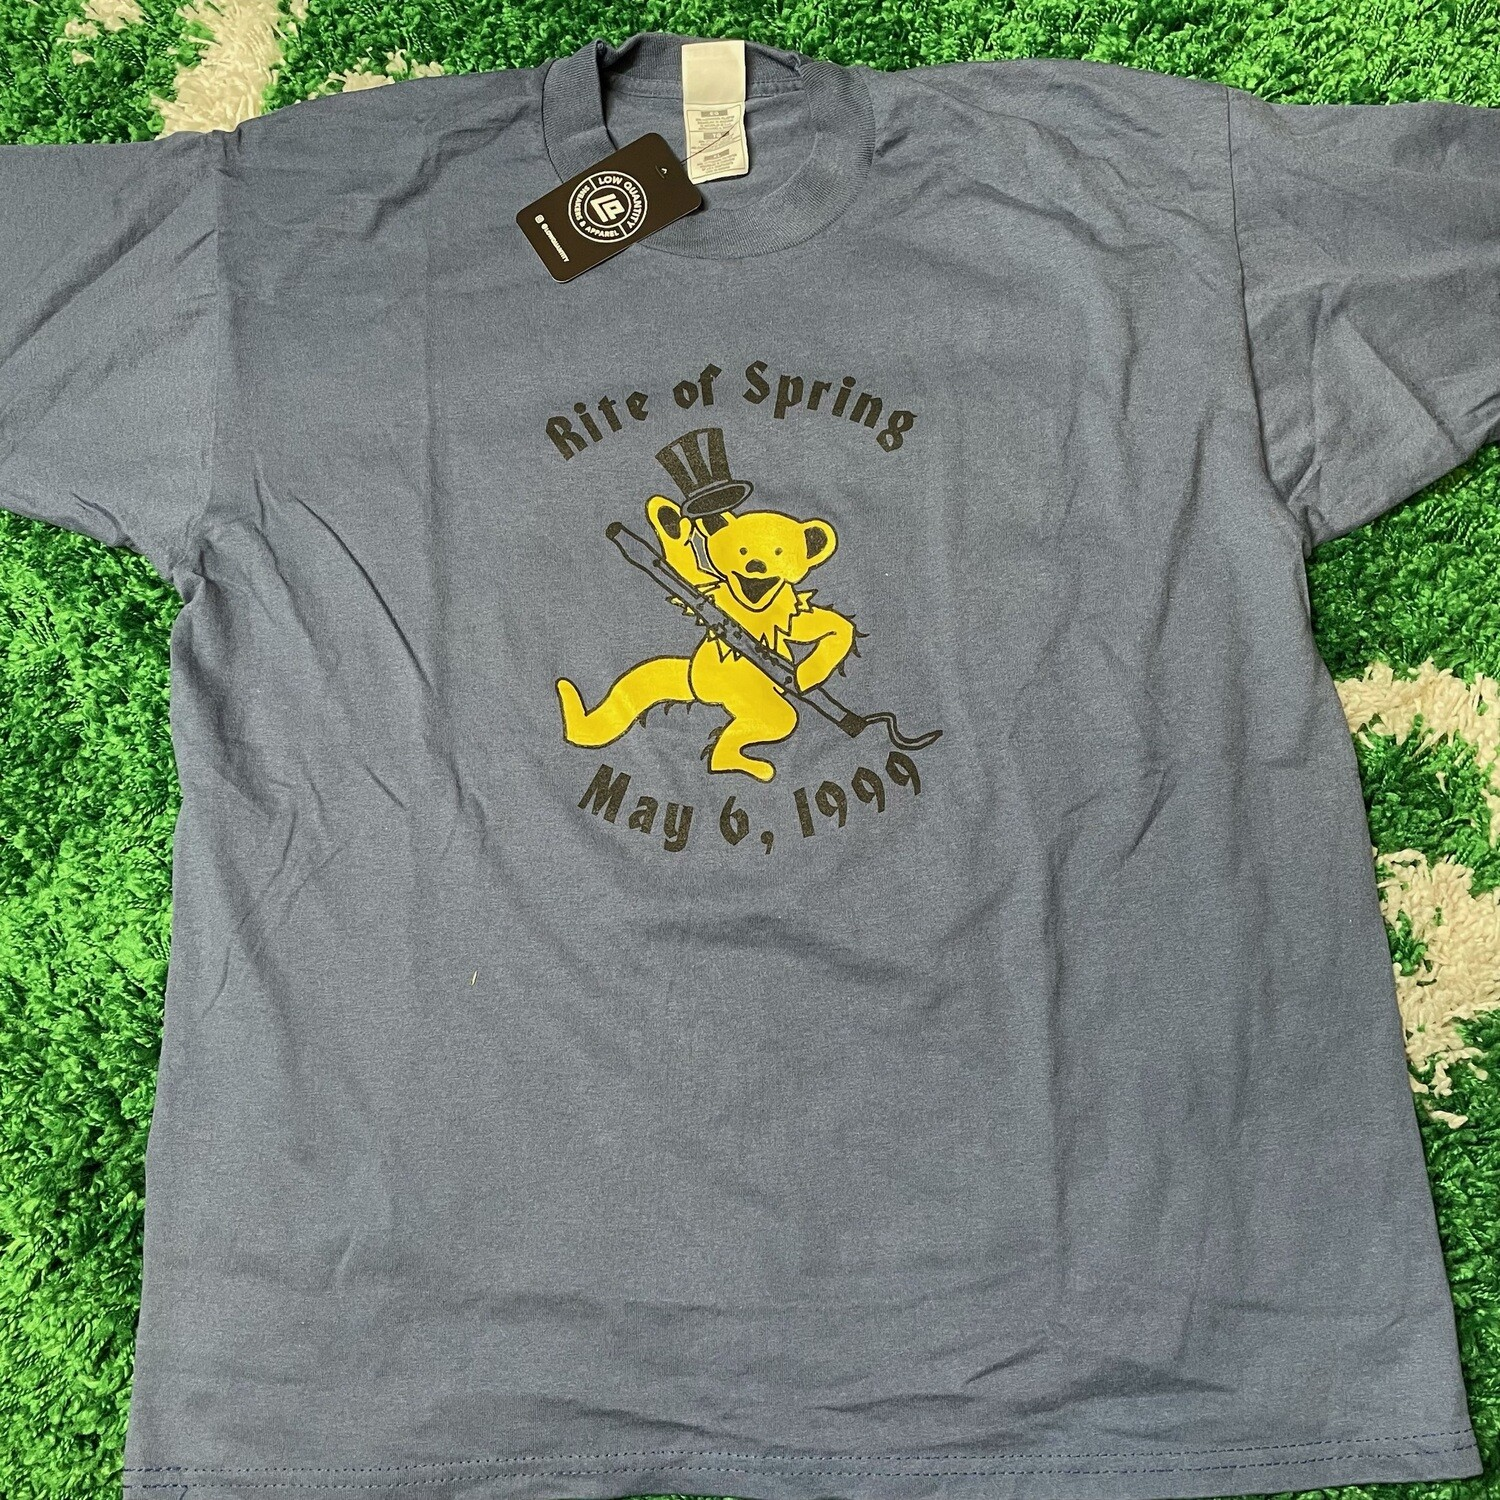 Rite of Spring May 6th 1999 Tee Size XL